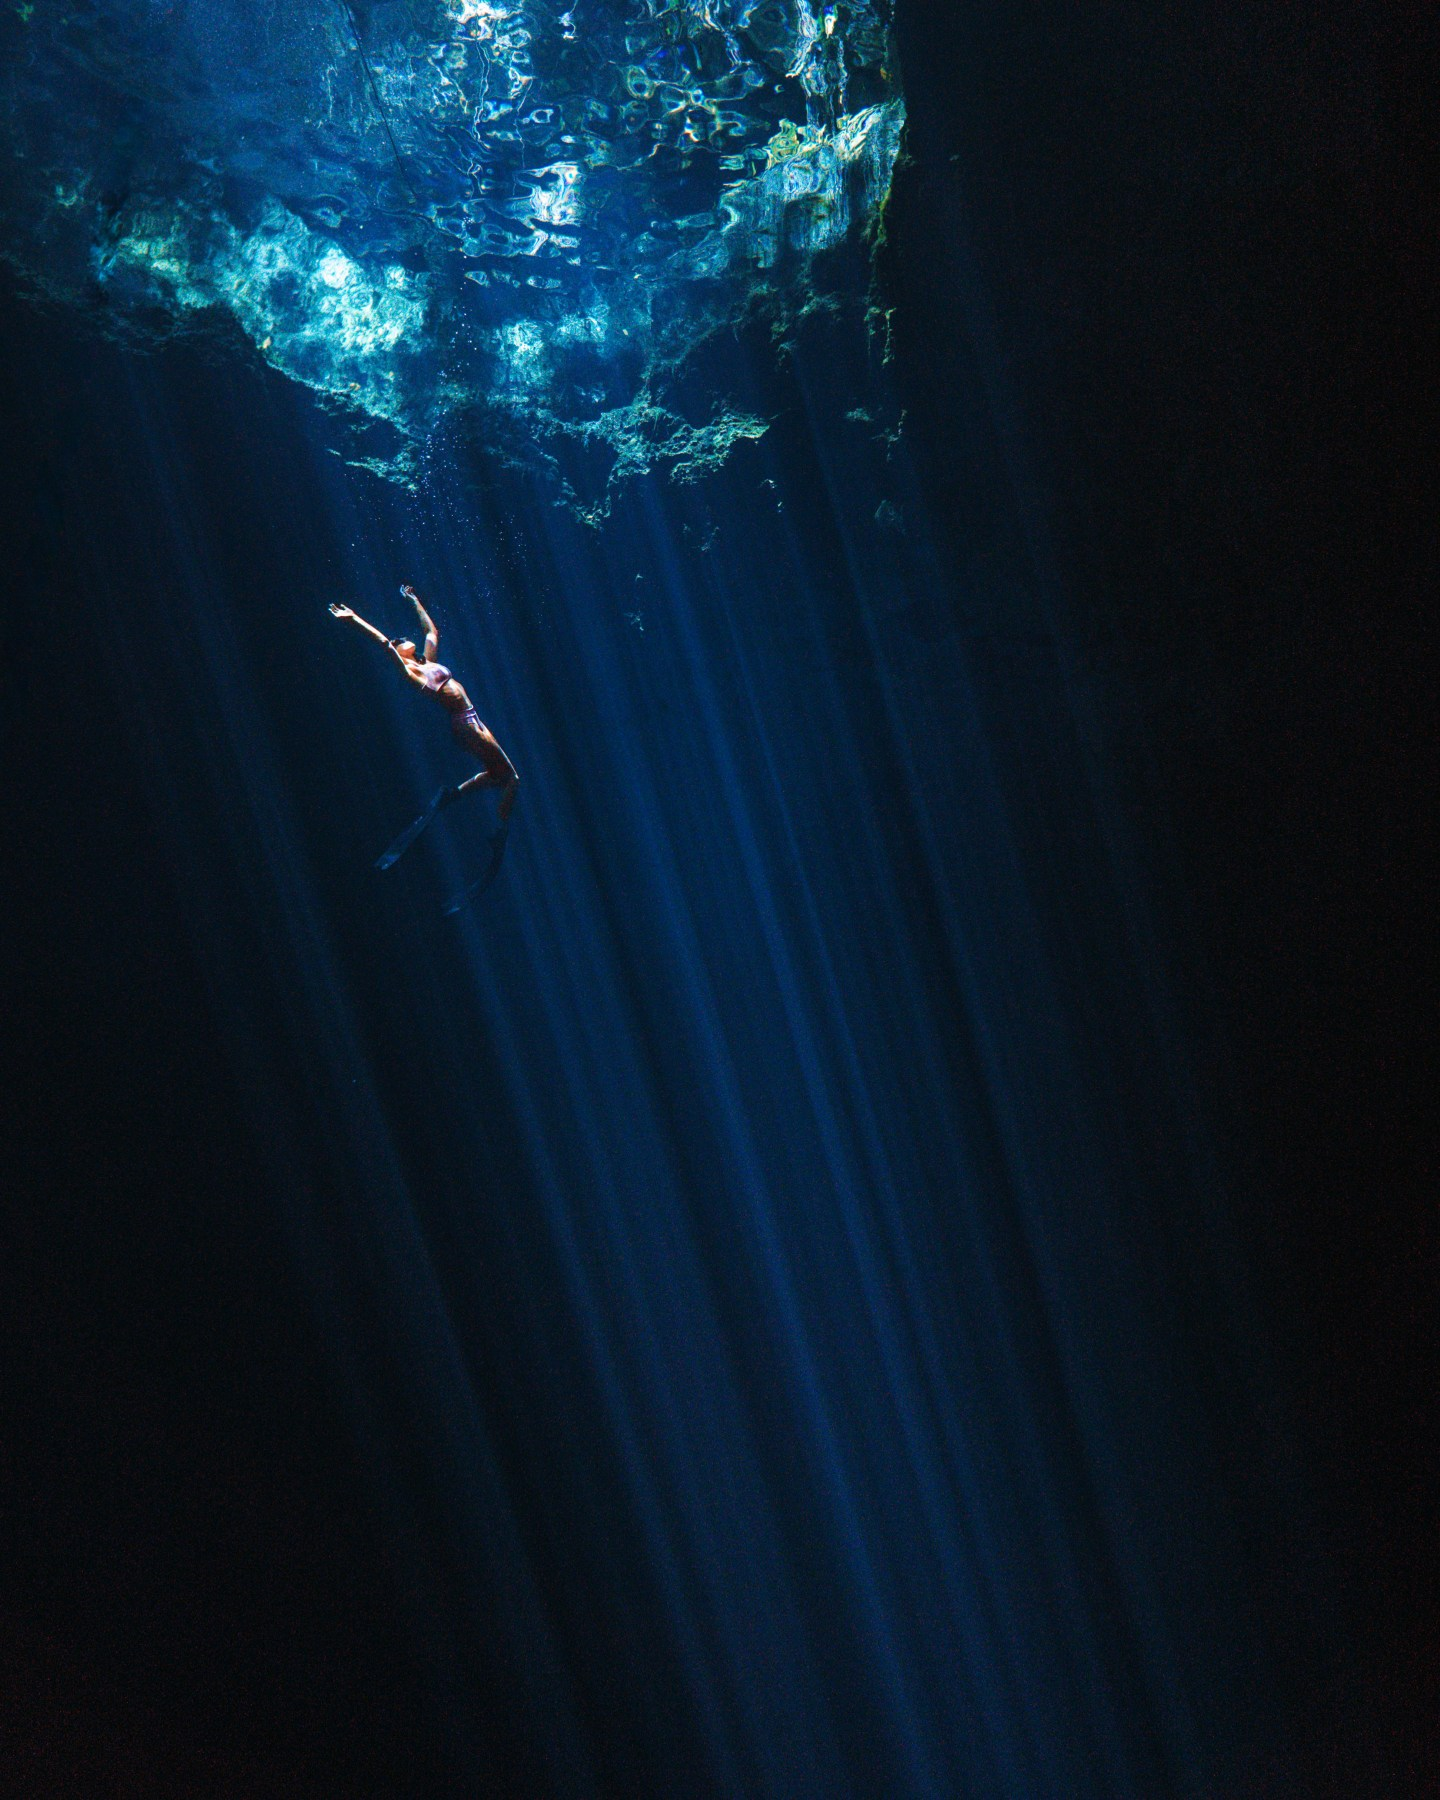 Maravilla Cenote Quintana Roo Mexico. This guide gives you tips for all of the best cenotes in Tulum and the best cenotes near Tulum including what to pack for the best Tulum cenotes and more. If you are looking for day trips from Tulum, check out the best cenotes in Quintana Roo and best cenotes in Yucatan for ideas! | Tulum cenotes photography | cenotes Mexico tulum | cenotes tulum riviera maya | best cenotes in quintana roo | cenotes quintana roo | cenotes in playa del carmen